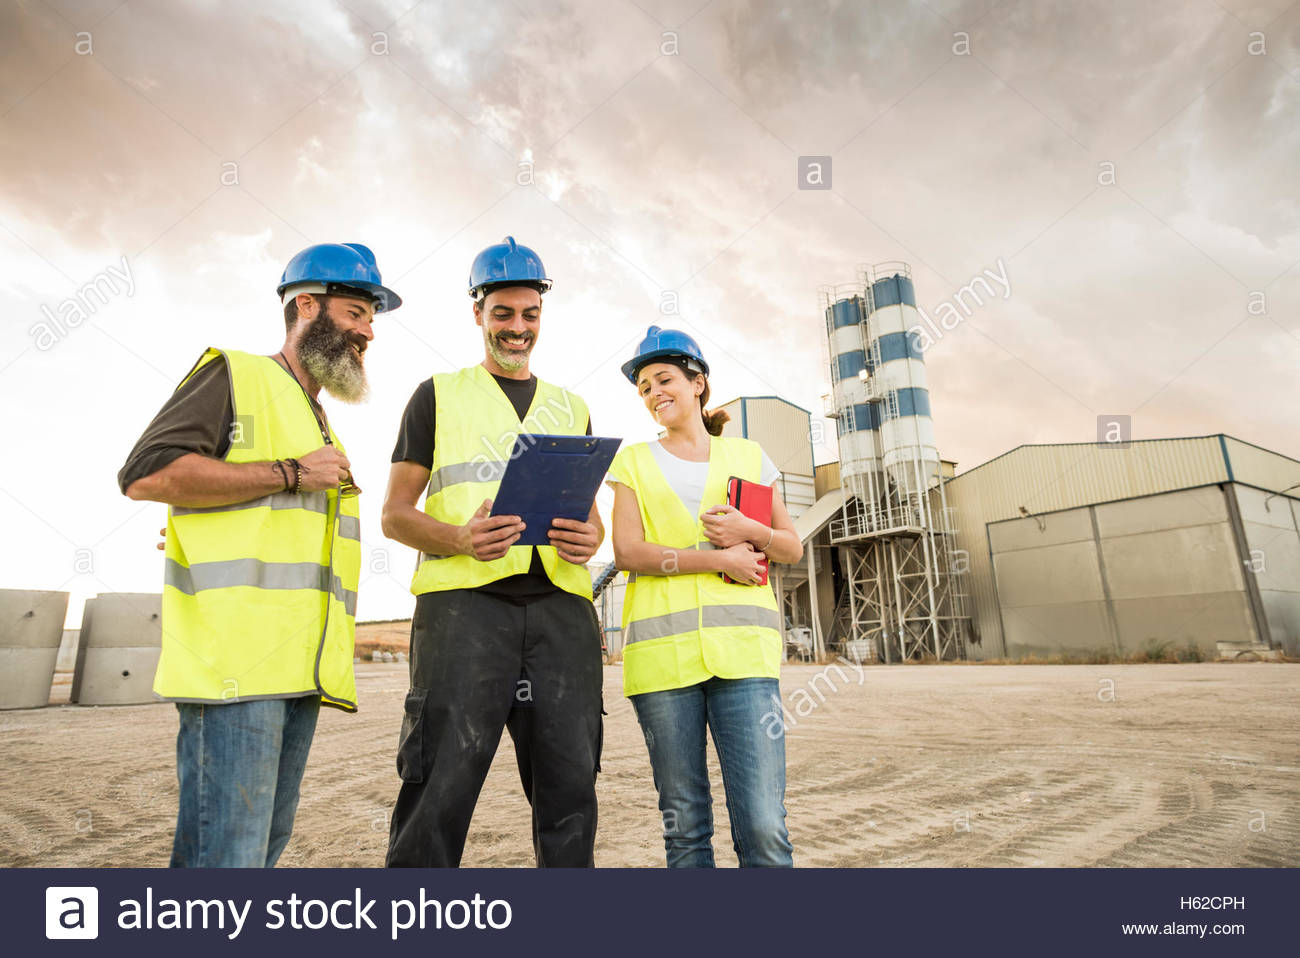 Three people in safety vests on industrial site - Stock Image